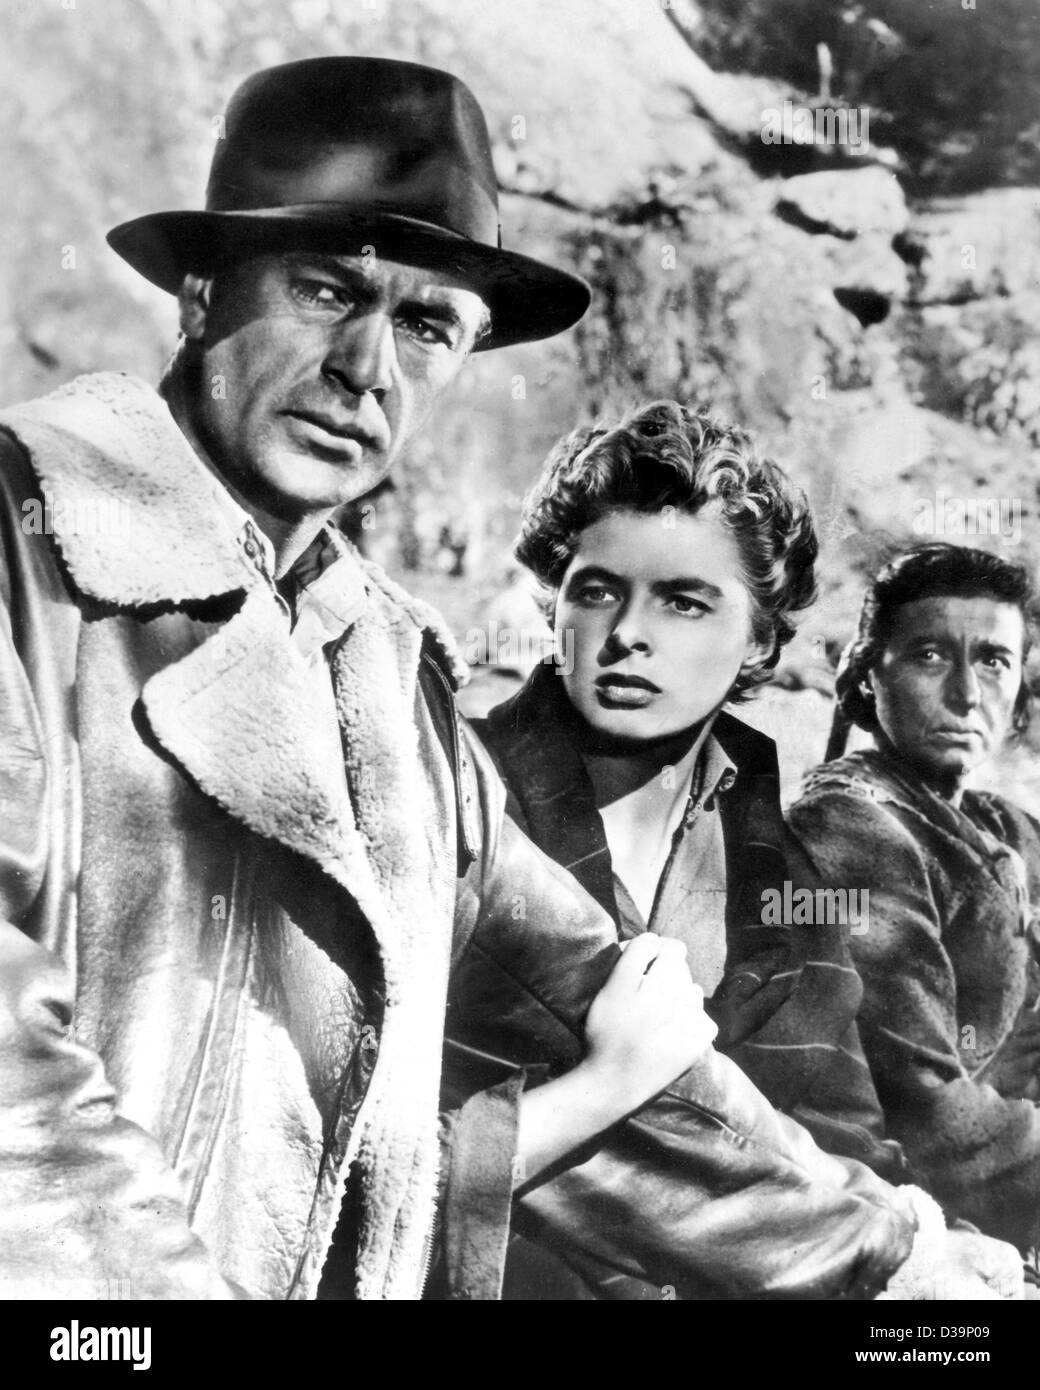 (dpa files) - Ingrid Bergman stars with Gary Cooper in the film 'For Whom the Bell Tolls' (1943). Ingrid - Stock Image